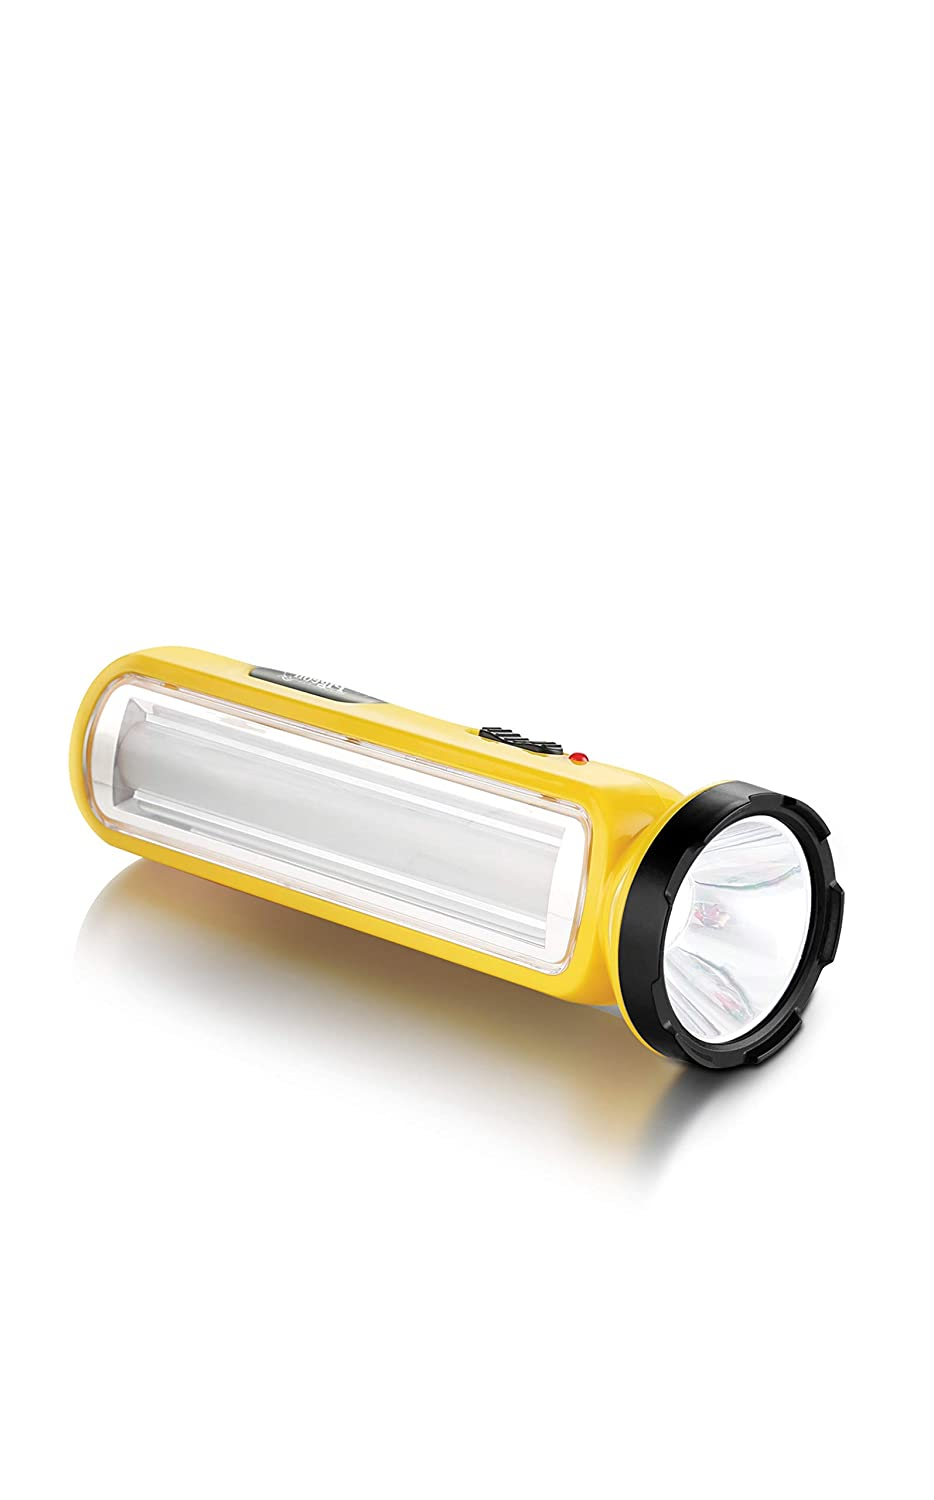 Pigeon Radiance LED Torch with Emergency Lights for homes